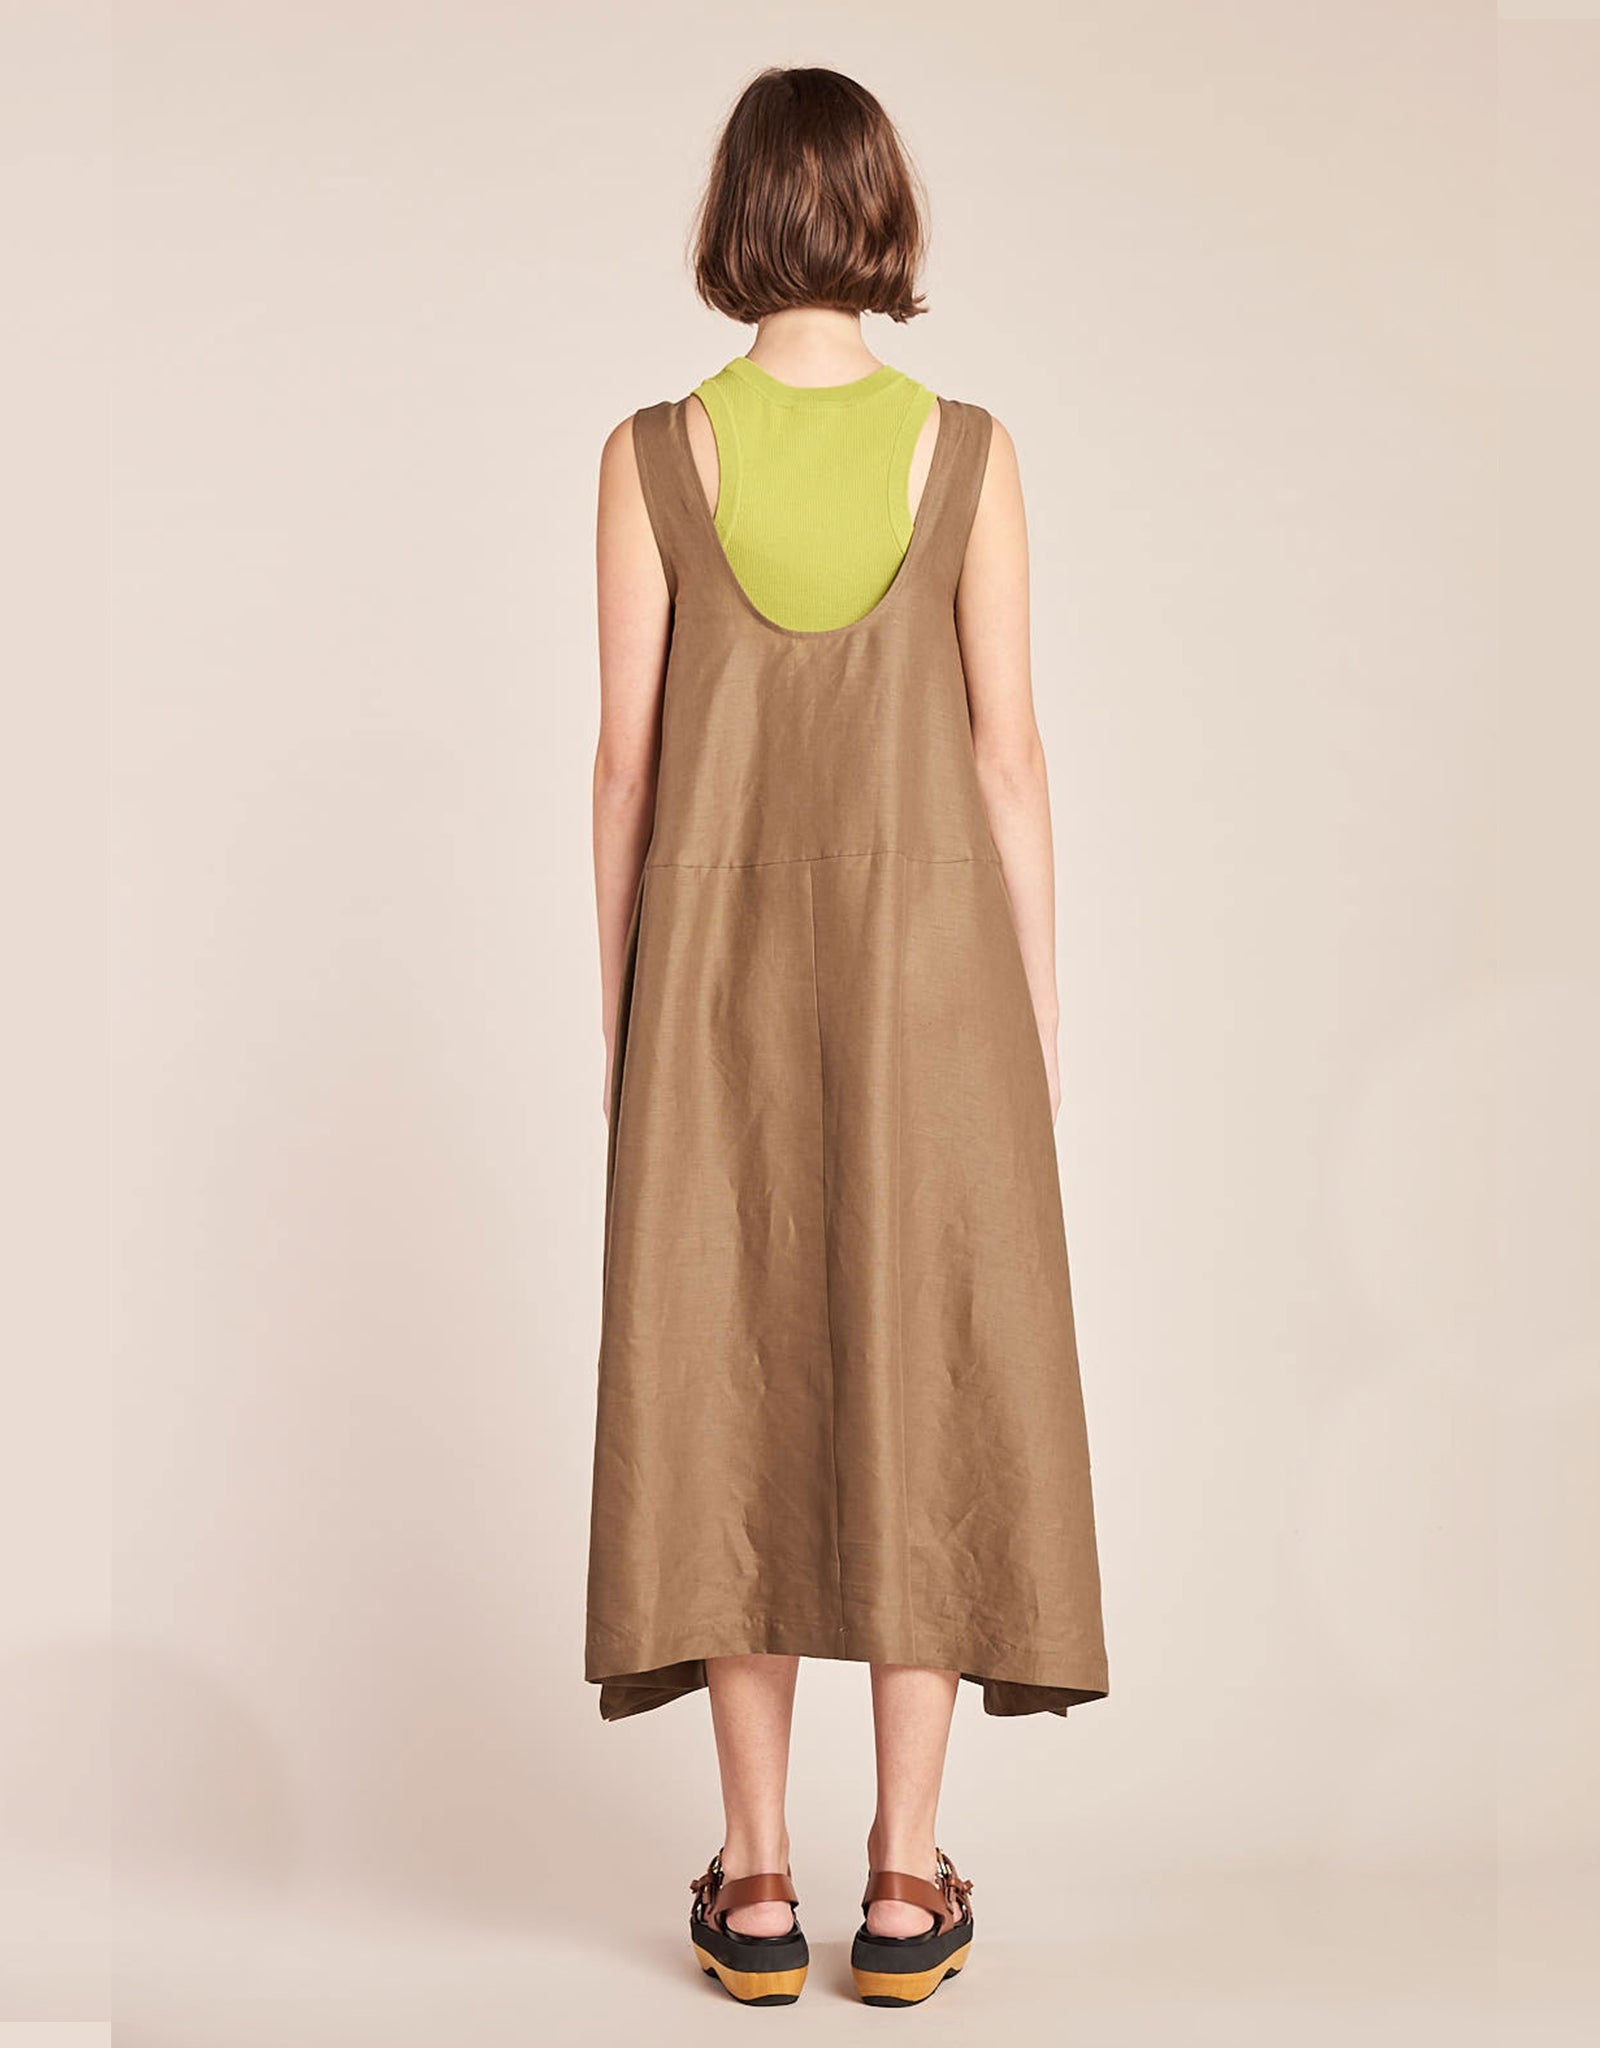 Model wears Kloke Luna Dress in Tobacco, styled layered over tank, back. Available at FAWN Toronto.